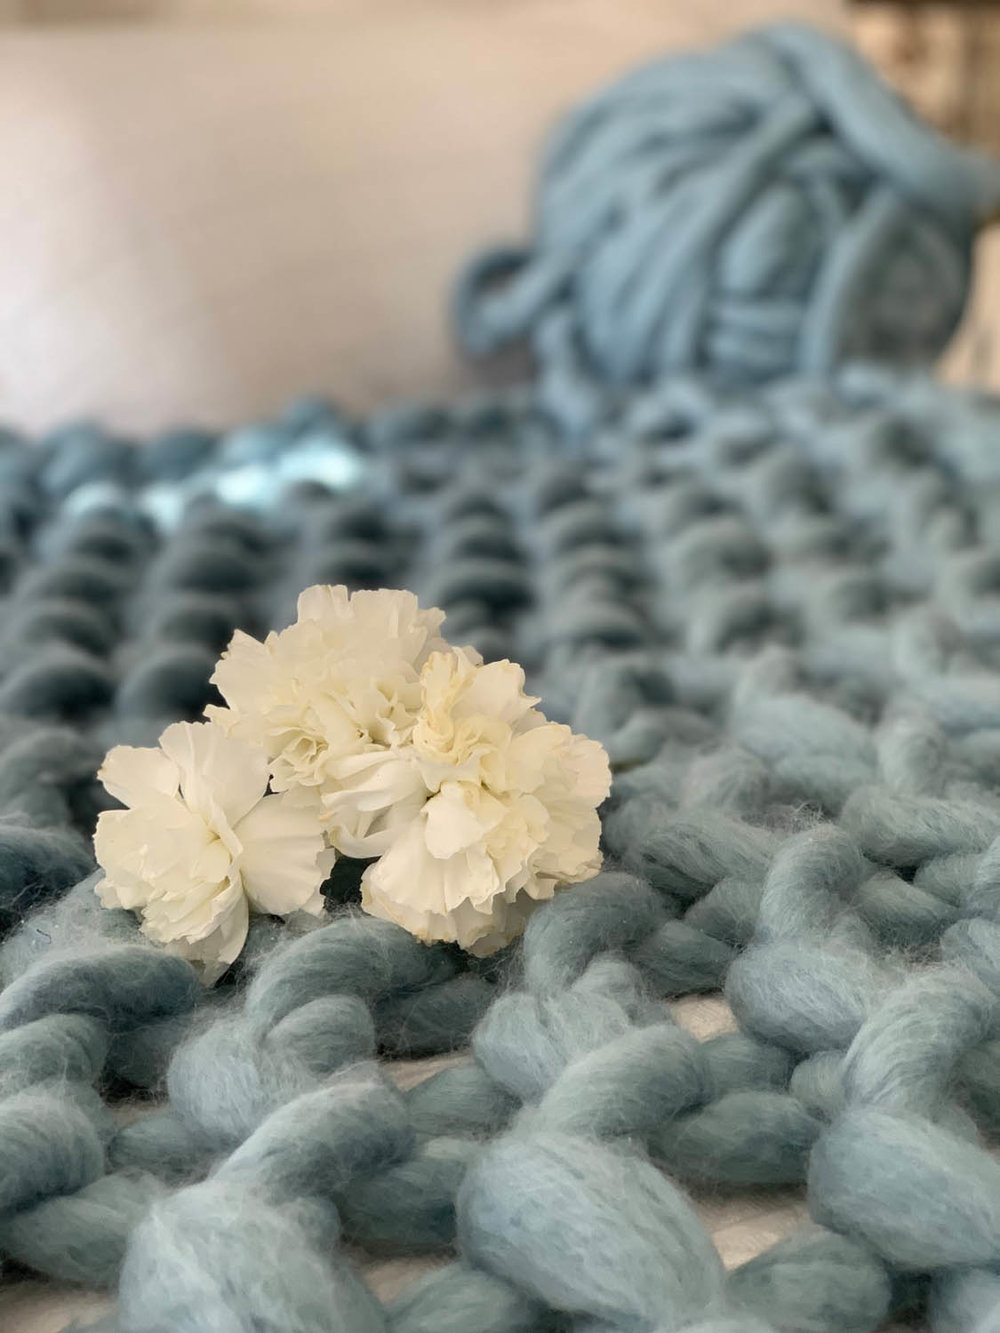 Finished 1-hour easy arm-knitted throw in dusty blue yarn with white hydrangeas